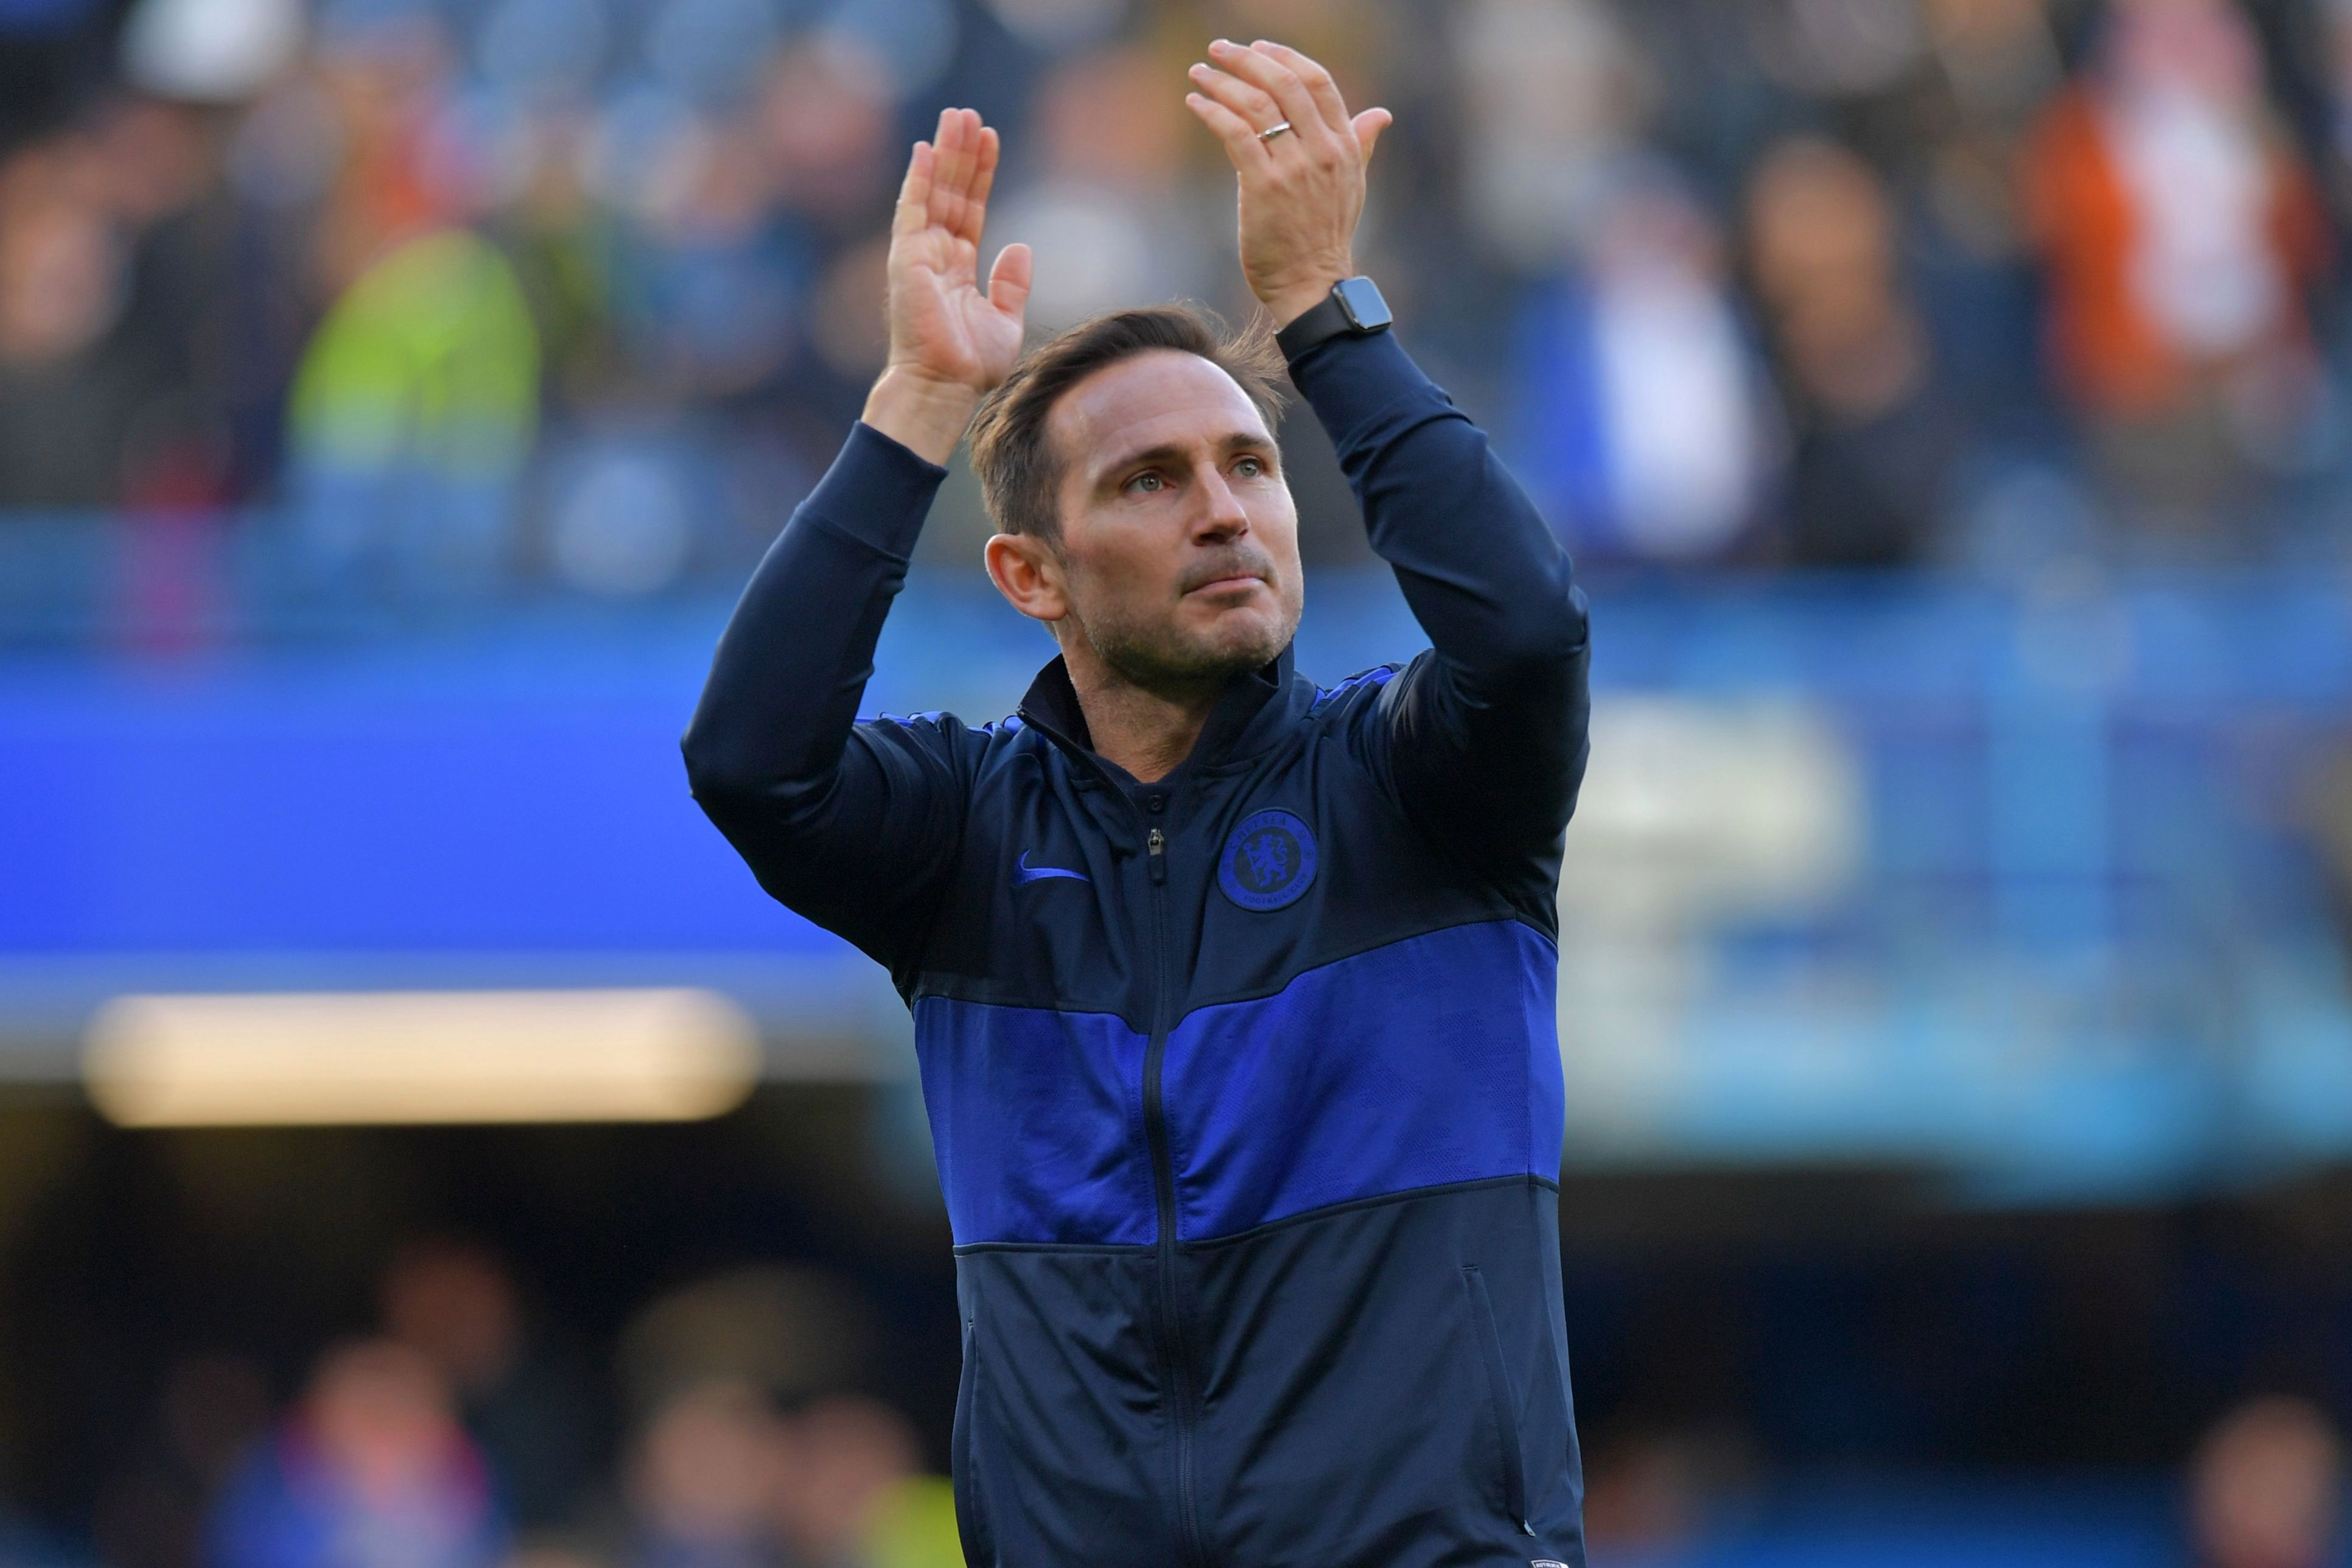 Frank Lampard's Chelsea take on Crystal Palace this weekend